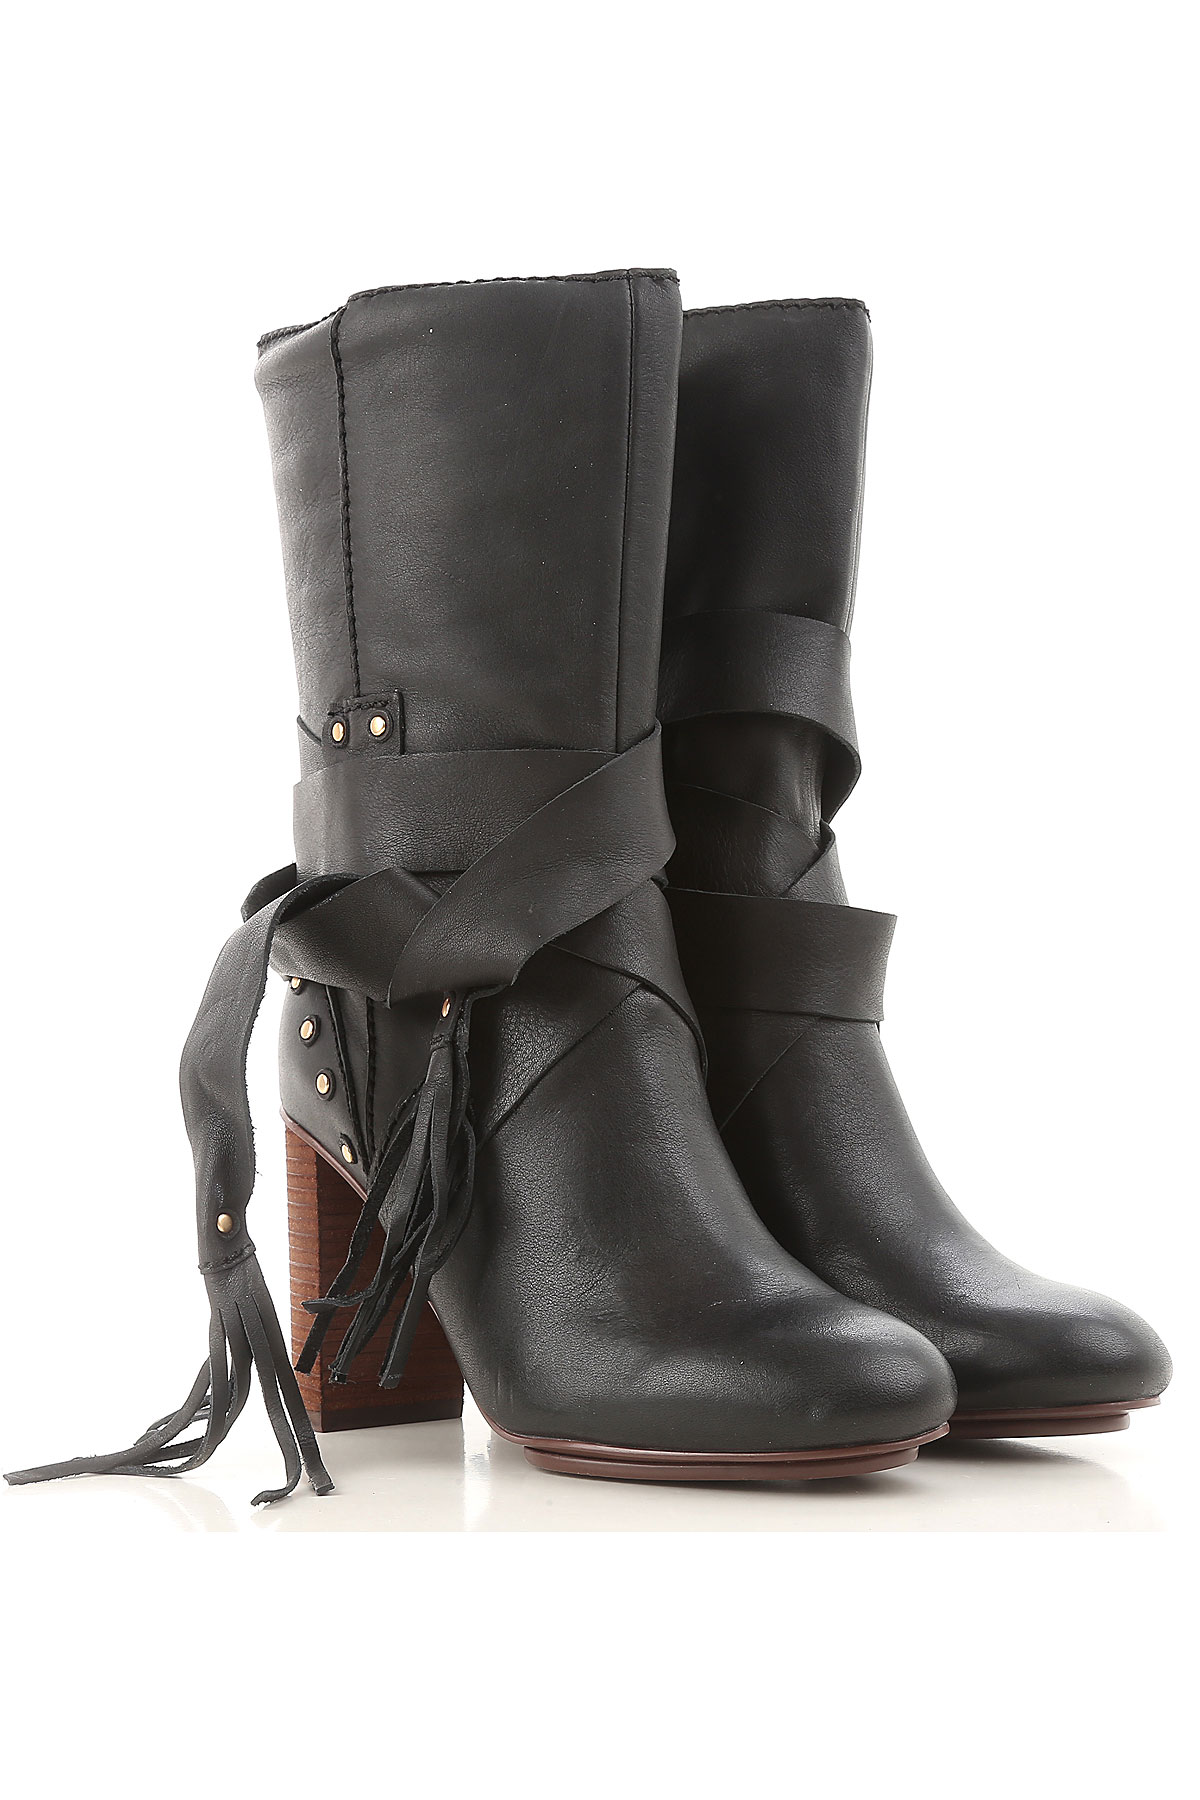 See By Chloe Boots for Women, Booties On Sale in Outlet, Black, Leather, 2019, 7 9